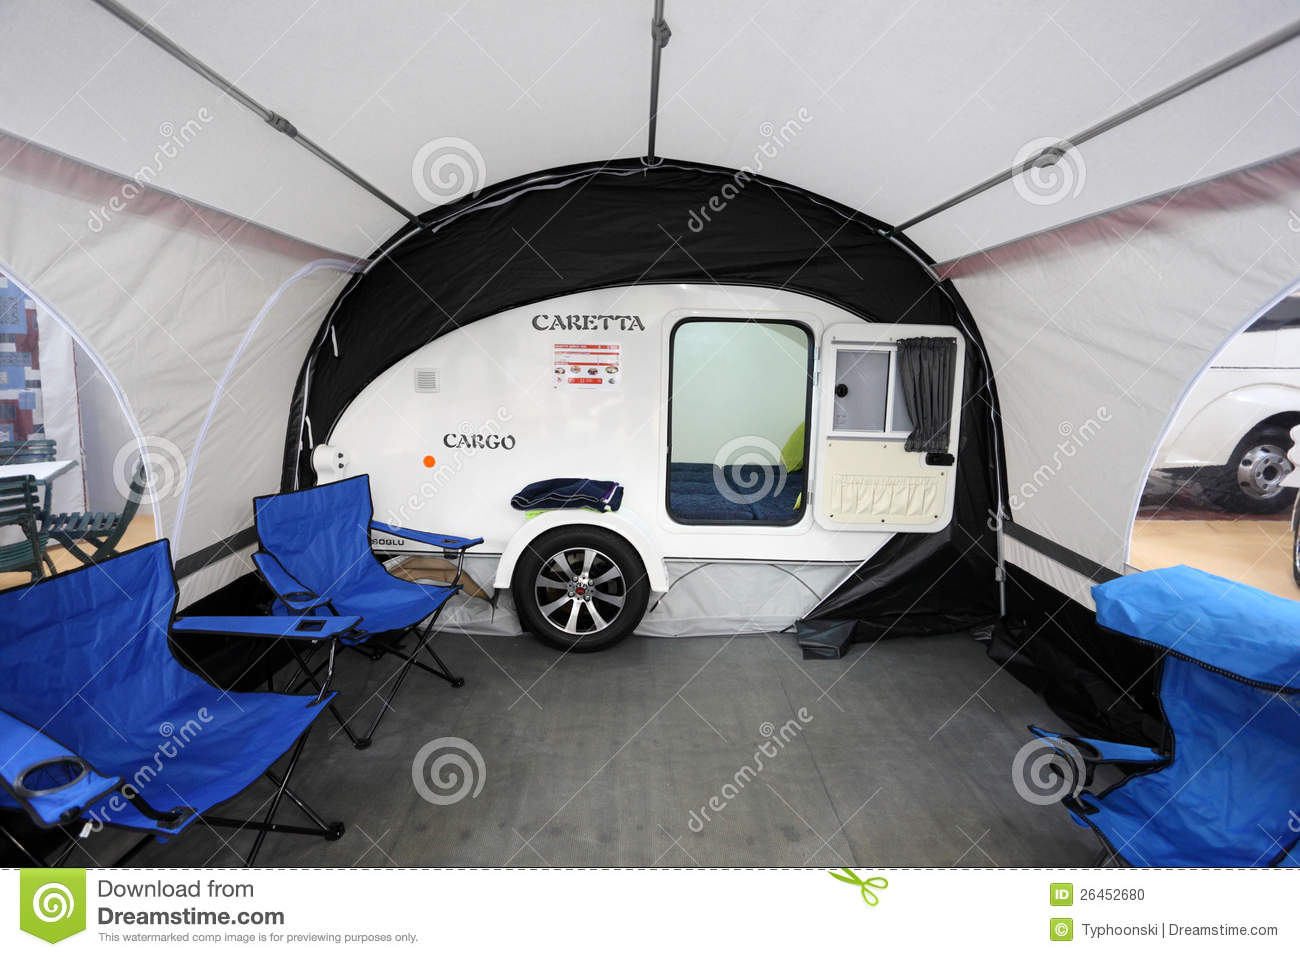 Small Camper Caretta With Awning Editorial Image - Image ...